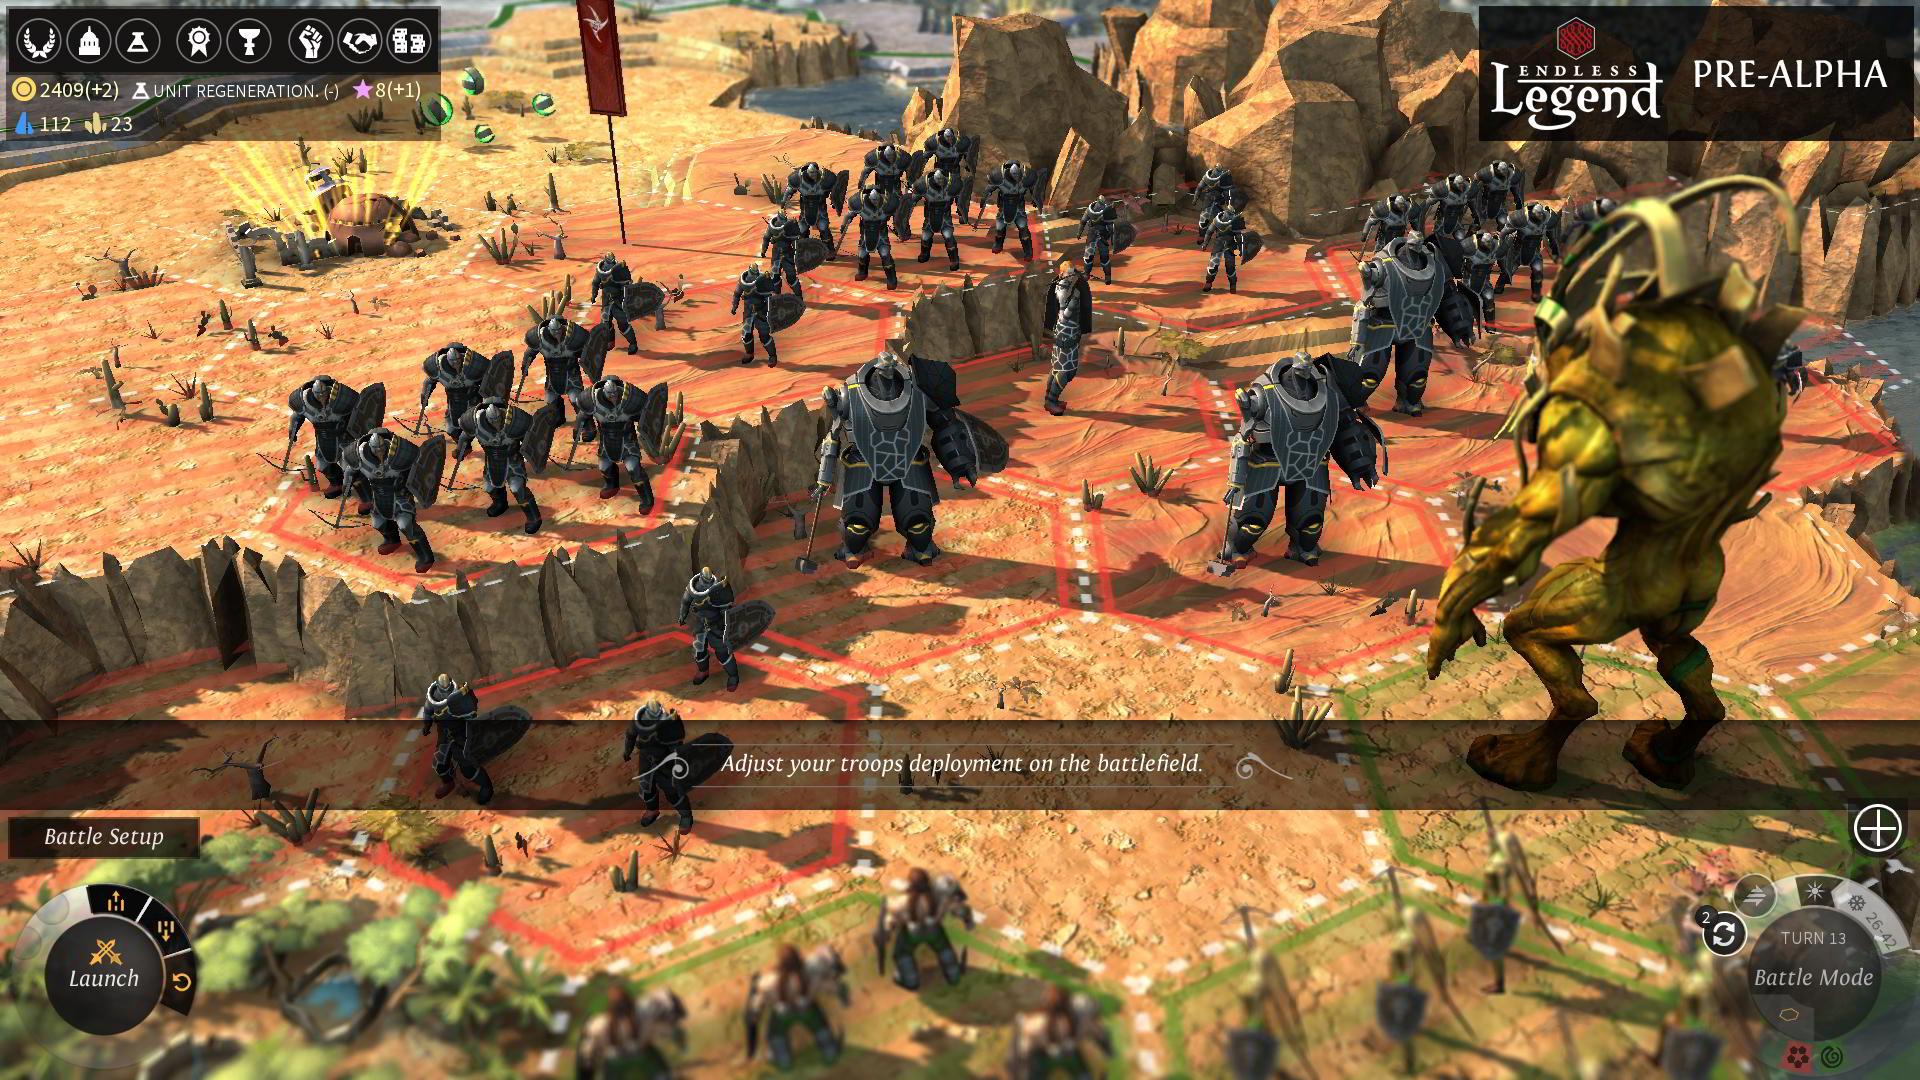 Endless Legend Review - This is Science-Fantasy at its Best